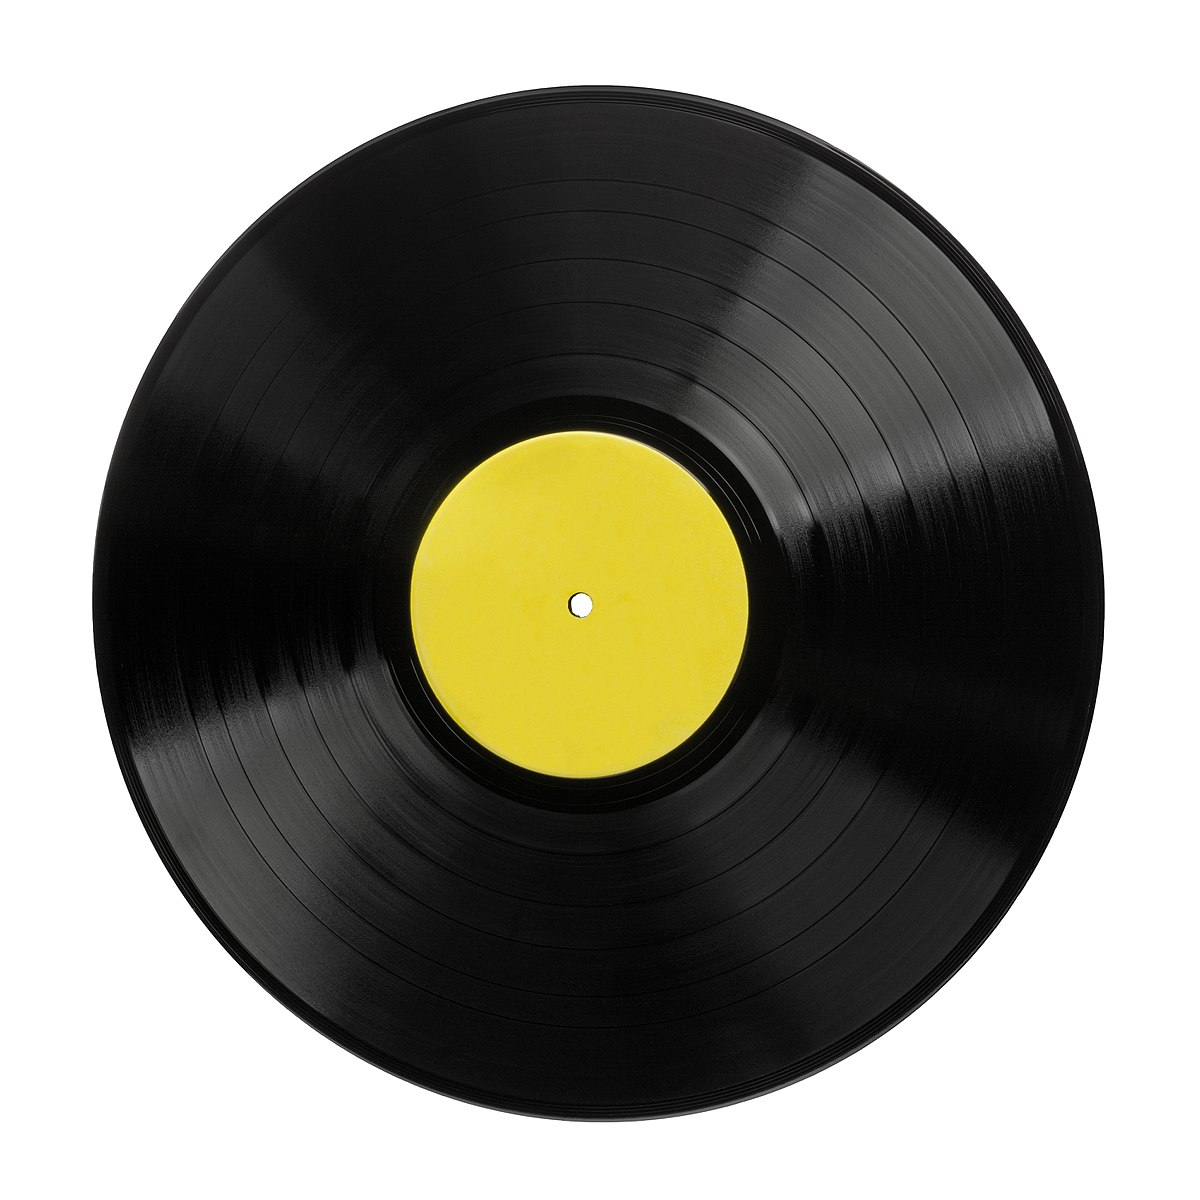 UK Vinyl Sales Are On Course To Reach Their Highest Levels In ThreeDecades